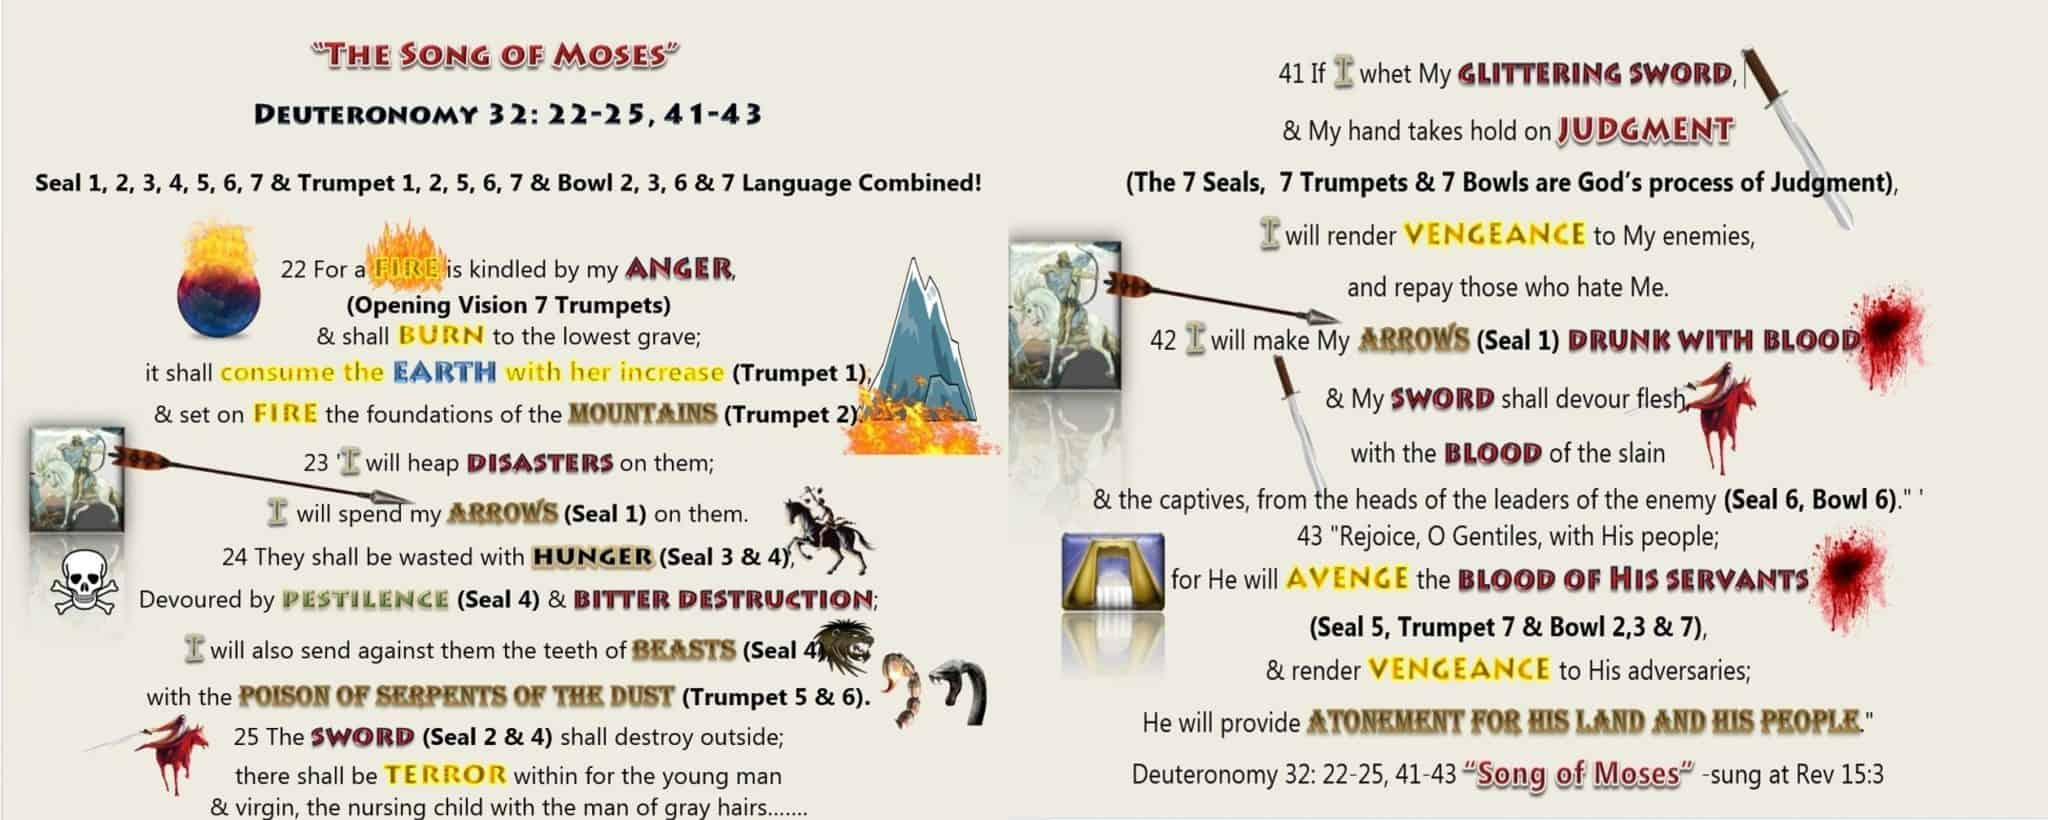 Biblical Interpretation,Scriptural Interpretation,Interpretation,First Seal,1st seal,White Horse,Crown,Bow,Conquer,Second Seal,2nd Seal,Red Horse,Sword,Take Peace Away,Men kill one another,Third Seal,3rd Seal,Black Horse,Famine,Scales,Balances,Weigh,Wheat,Barley,Penny,days wage,danarius,Fourth Seal,4th Seal,Hades,Hell,Kill 1/4th,Kill fourth,Kill fourth part of earth,World War Three,World War 3,WW3,Green Horse,Pale Green Horse,Sword,Famine,War,Hunger,Disease,pestilence,plague,death,animals,Death,wild beast,Book of Revelation,Apocalypse,Revelation of Jesus Christ,7 Seals, Seven Seals,Revelation 6,Revelation Chapter 6,4 Horsemen,Four Horsemen,Population Reduction,Population Decline,Population Decrease,Judgment,Deuteronomy 32,Song of Moses